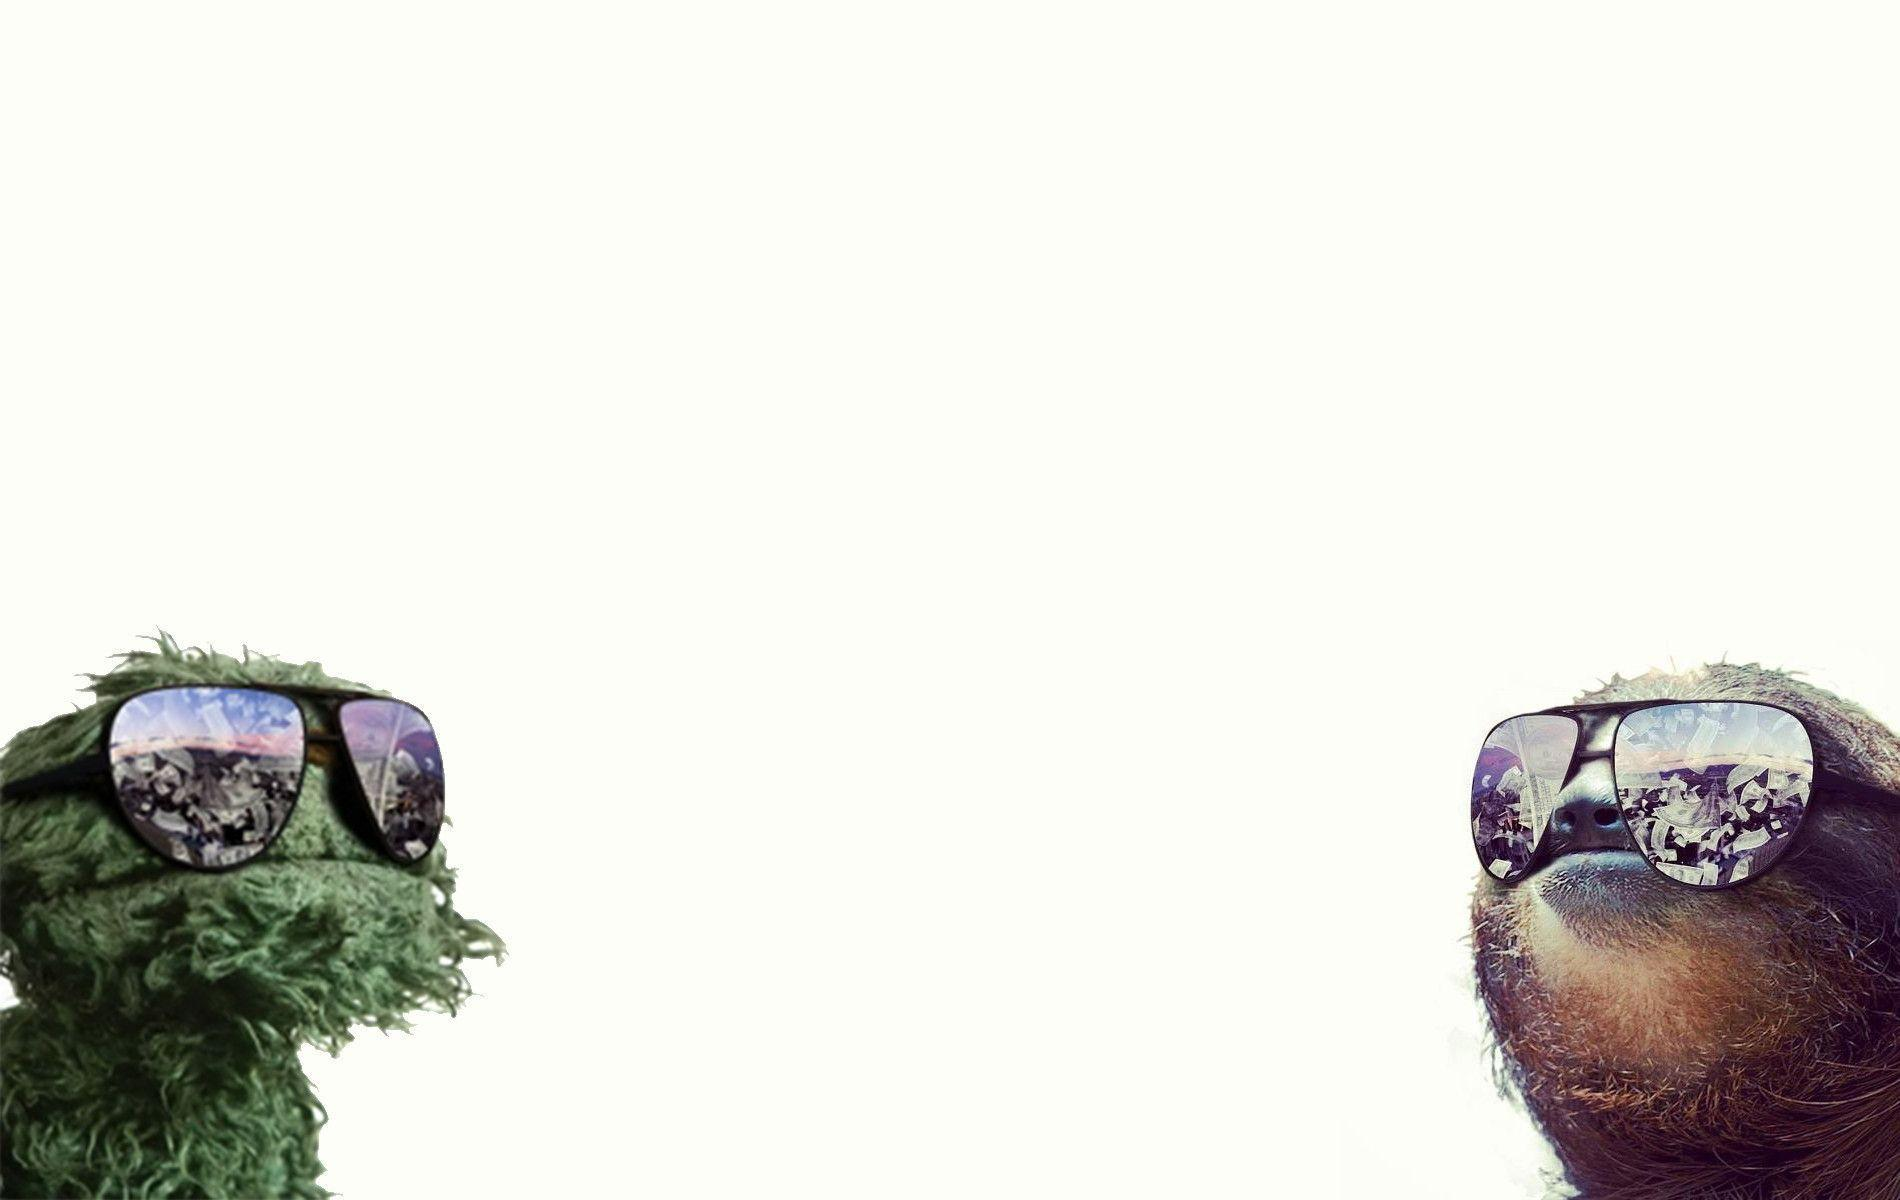 Made by request] Oscar and sloth : wallpapers